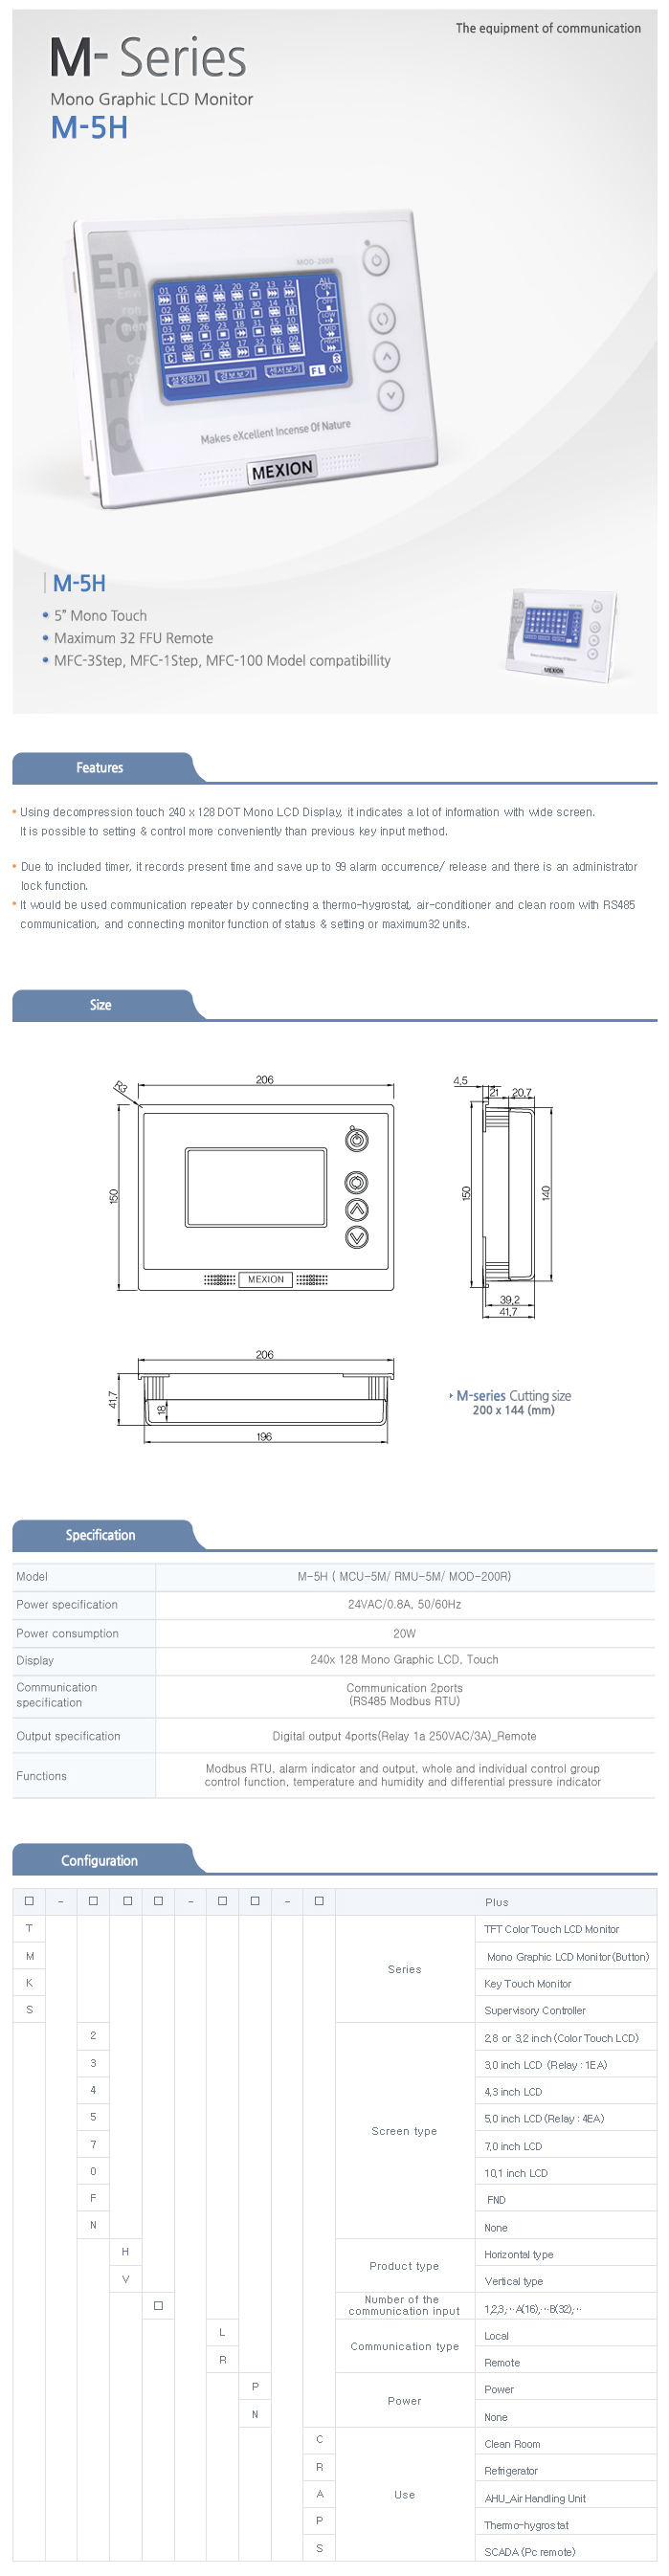 MST Mono Graphic LCD Monitor (M-5H) M-Series (5inch)